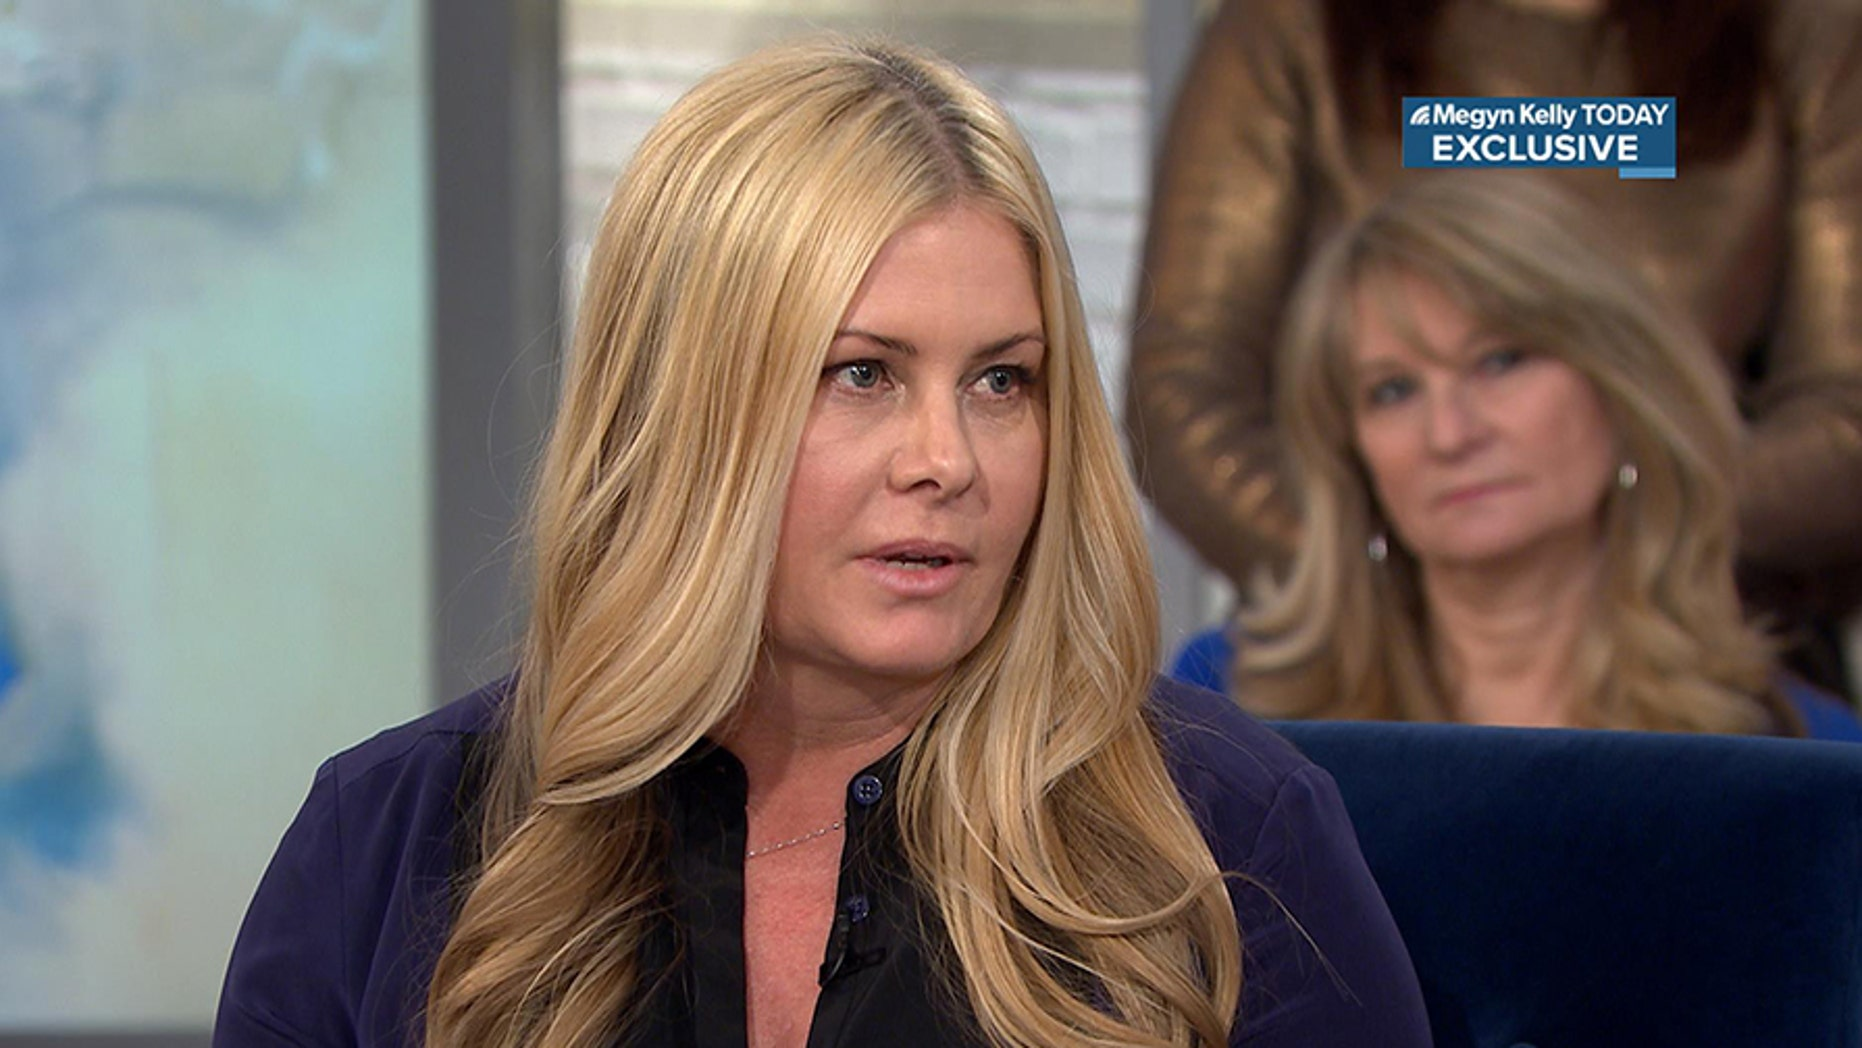 Nicole Eggert told Megyn Kelly Scott Baio repeatedly molested her when she was a minor.